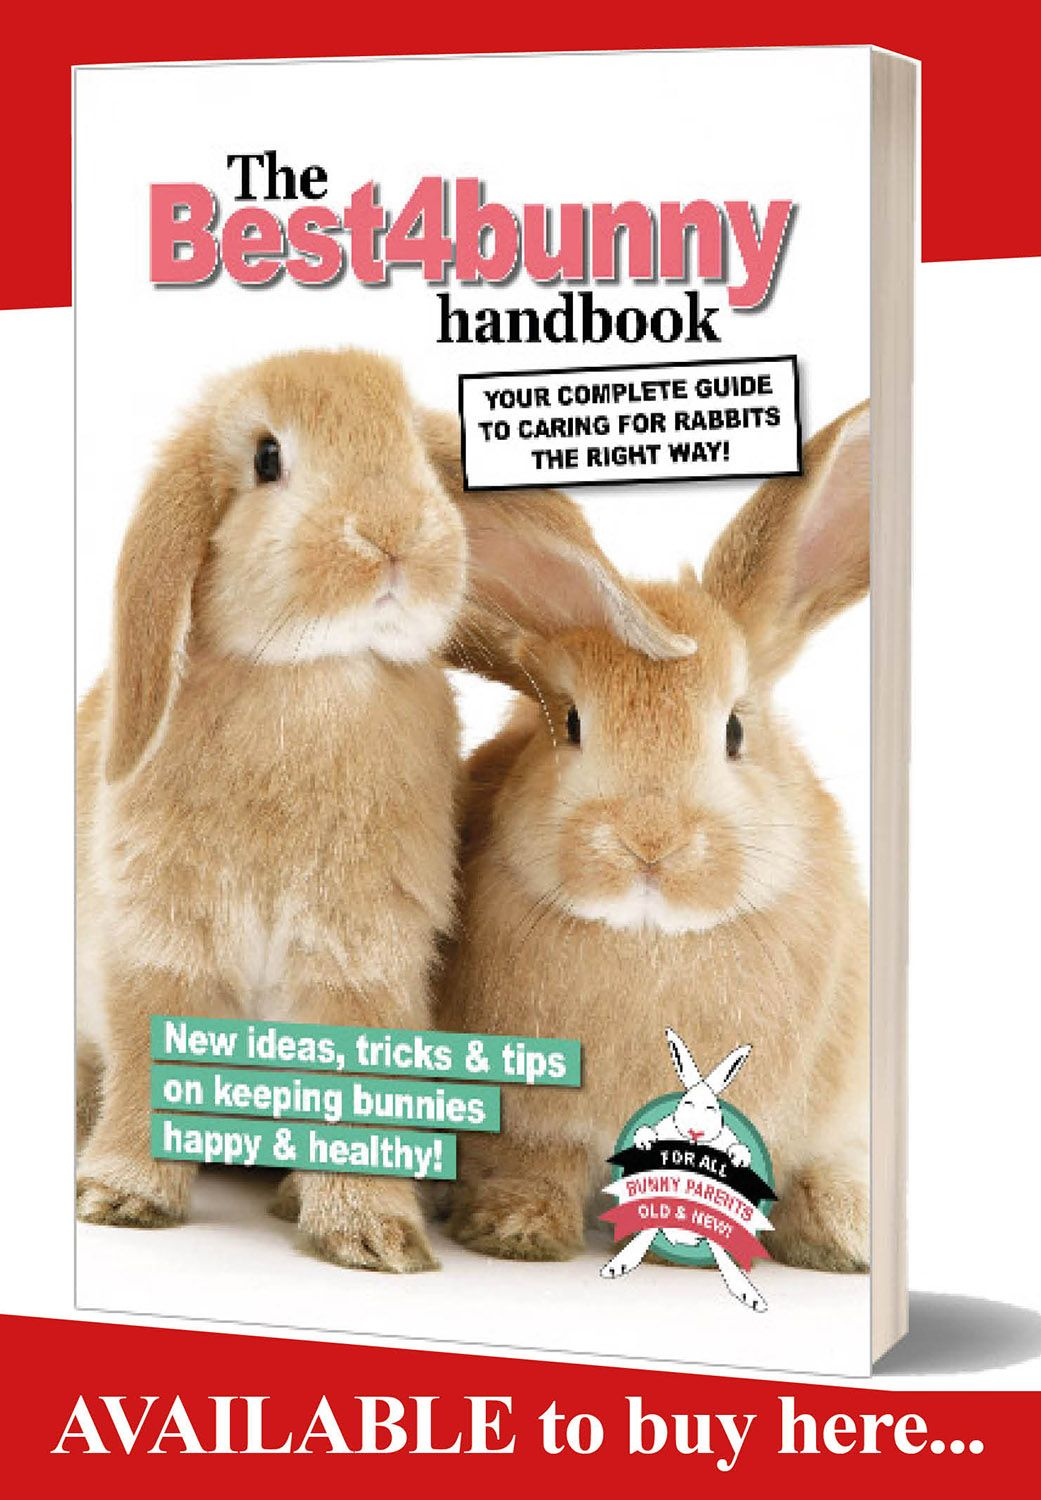 The Best4bunny Handbook Rabbit care guide for old & new